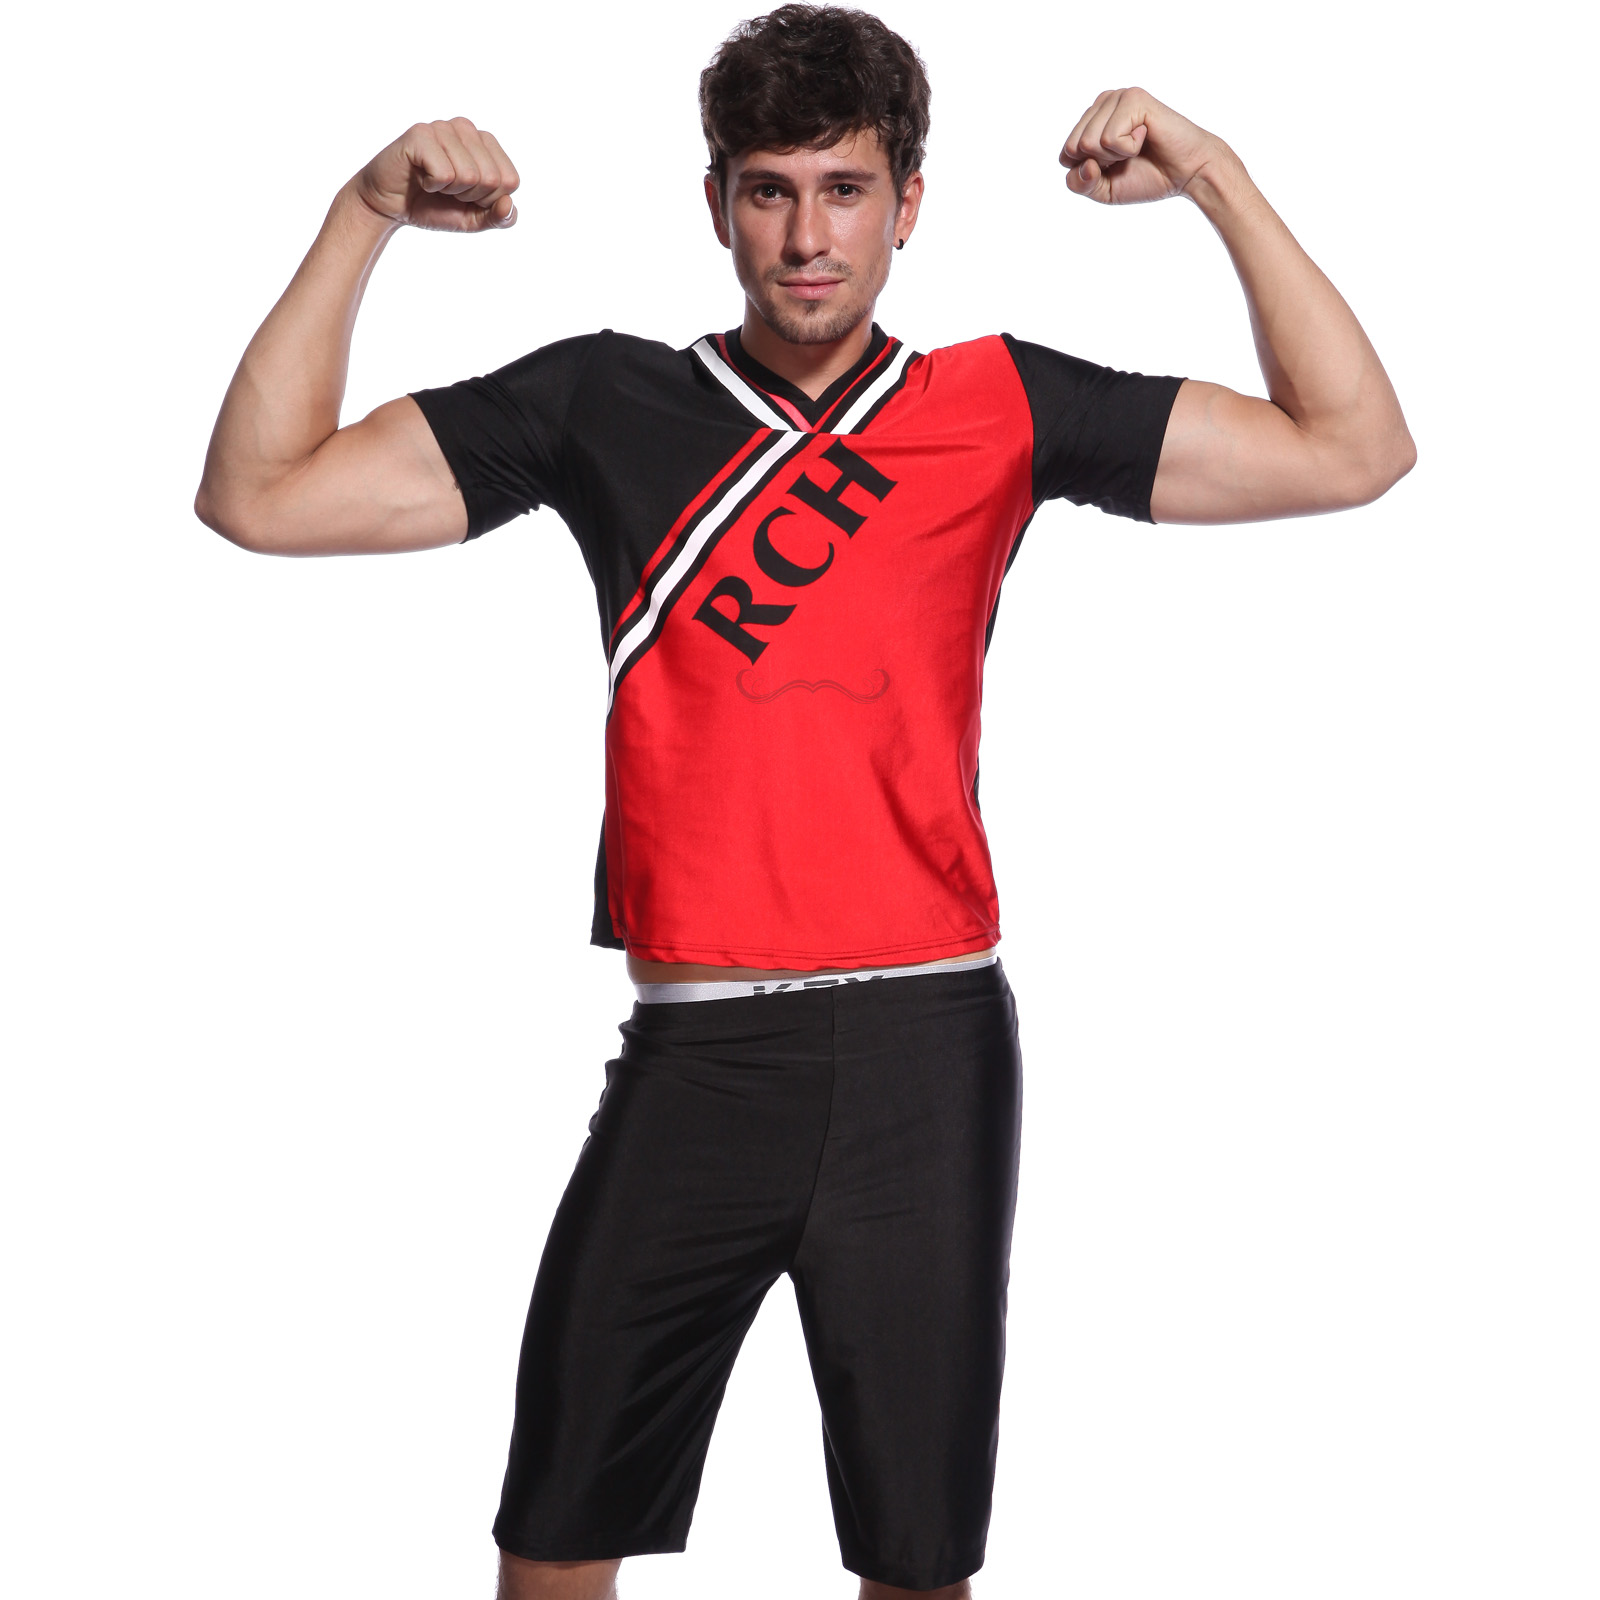 Bring it On Style RCH Cheerleader Costume Outfit Mens fancy dress standard size | eBay